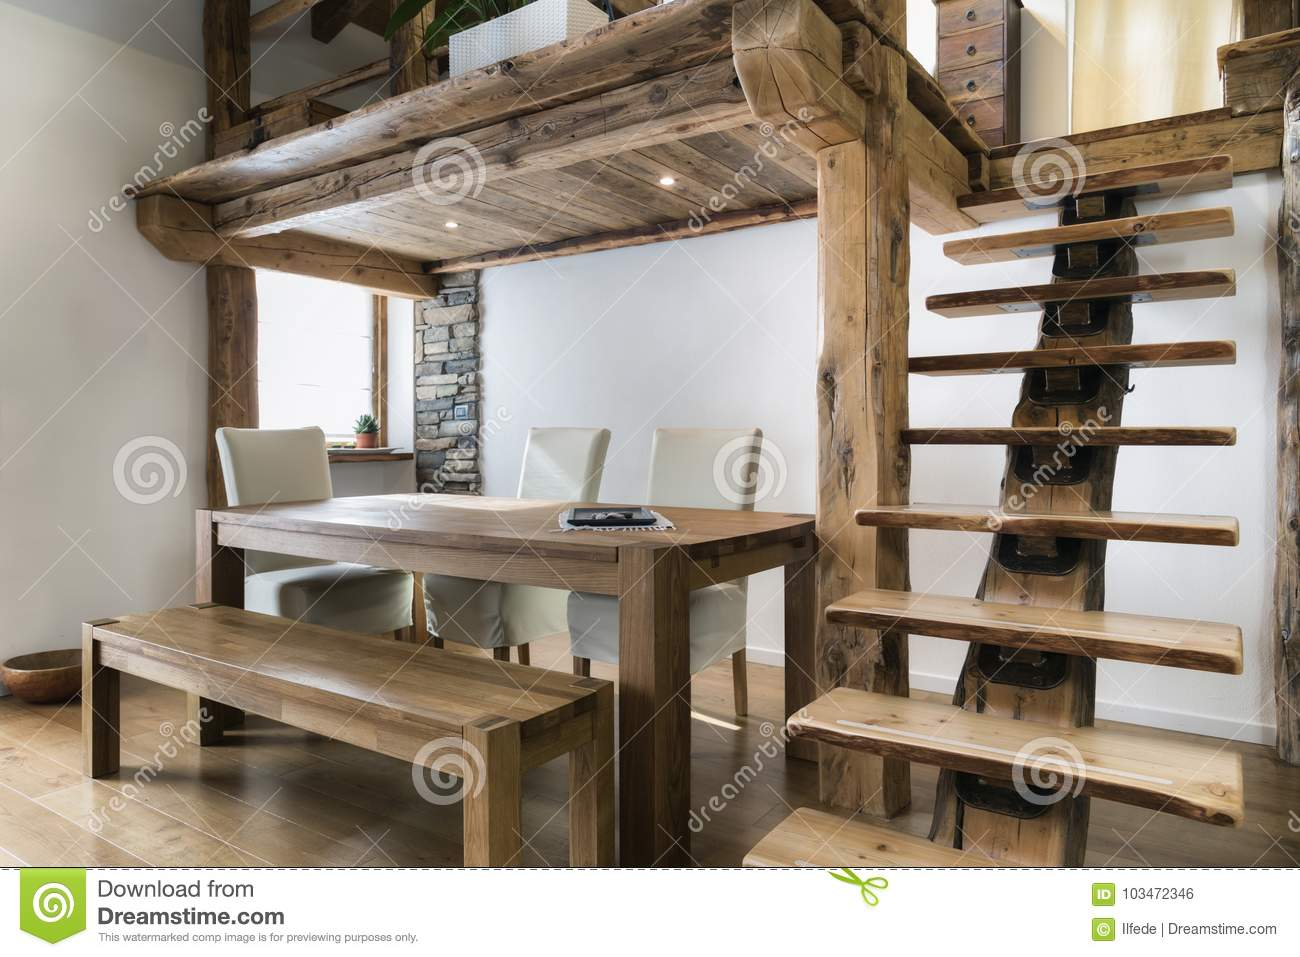 Wooden Table In Dining Room Under Mezzanine